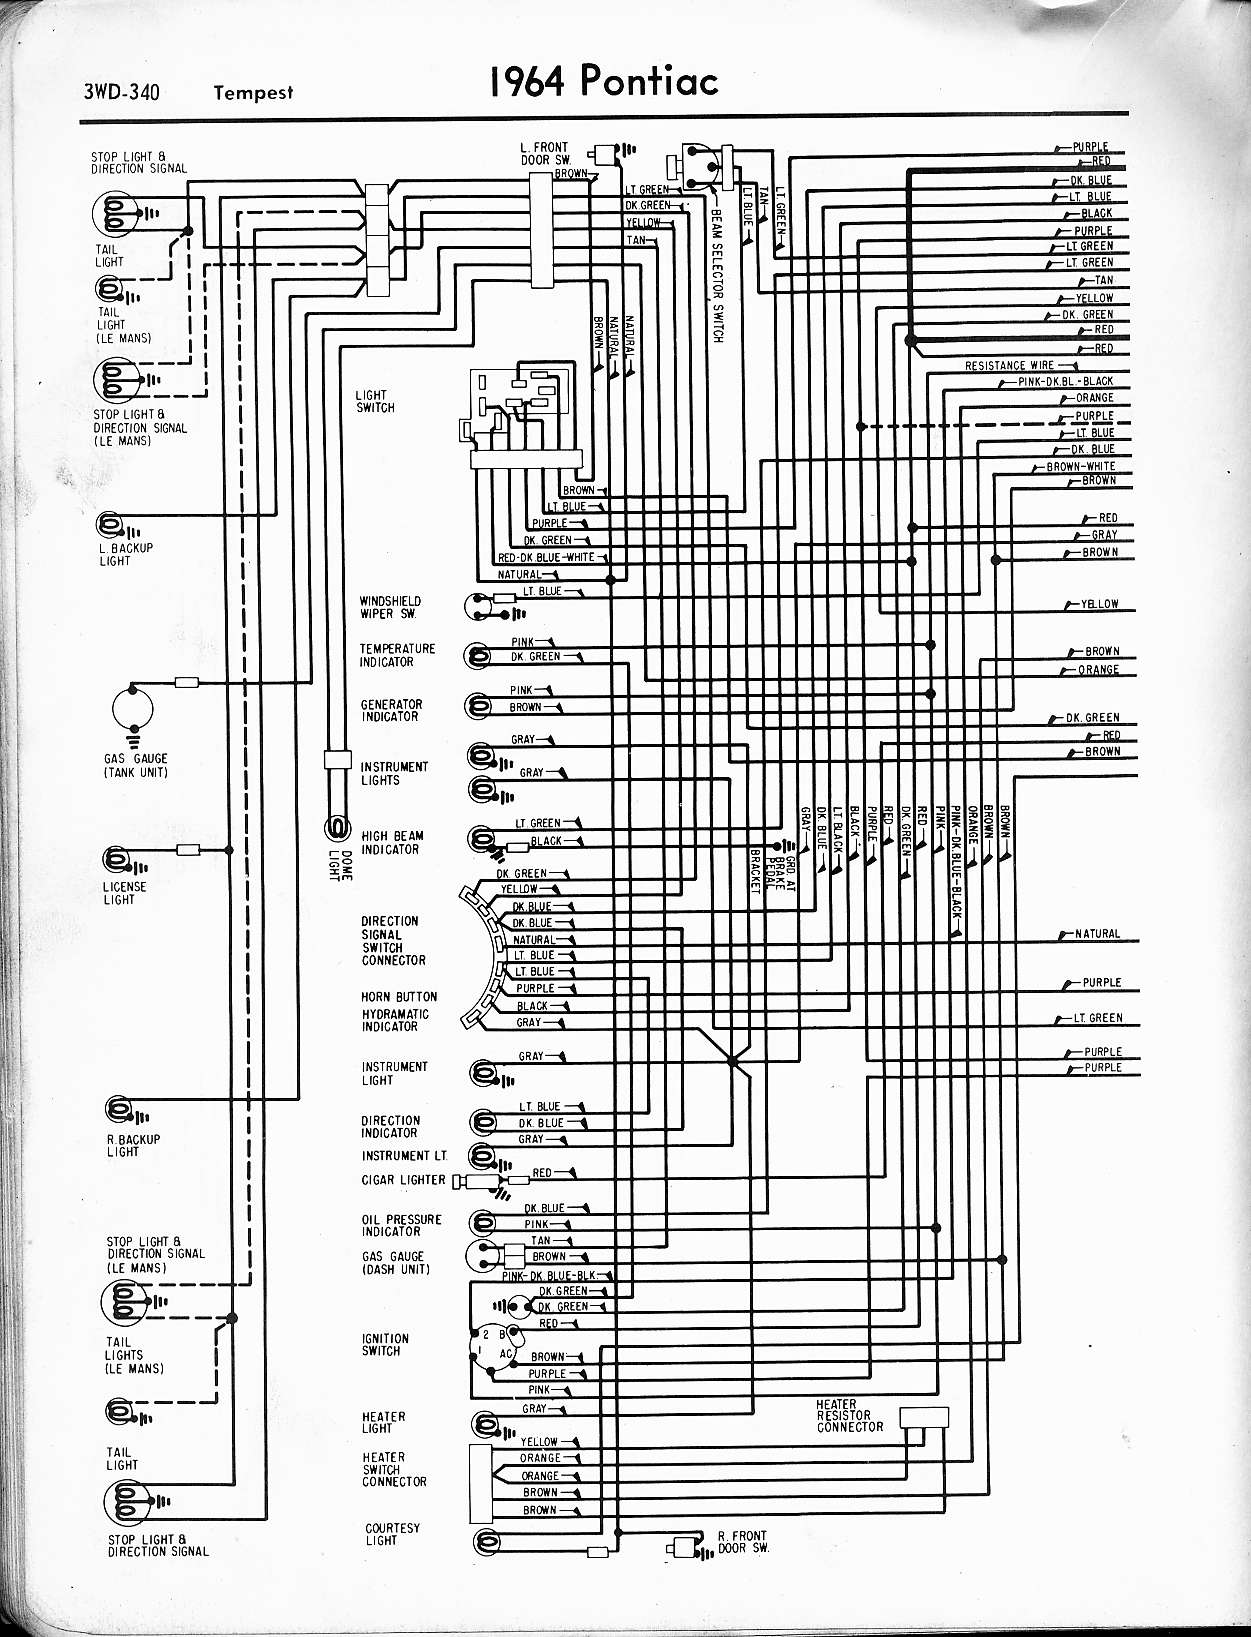 70 gto hood tach wiring diagram schematics wiring diagrams u2022 rh  parntesis co 1968 GTO Wiring-Diagram 1968 GTO Wiring-Diagram